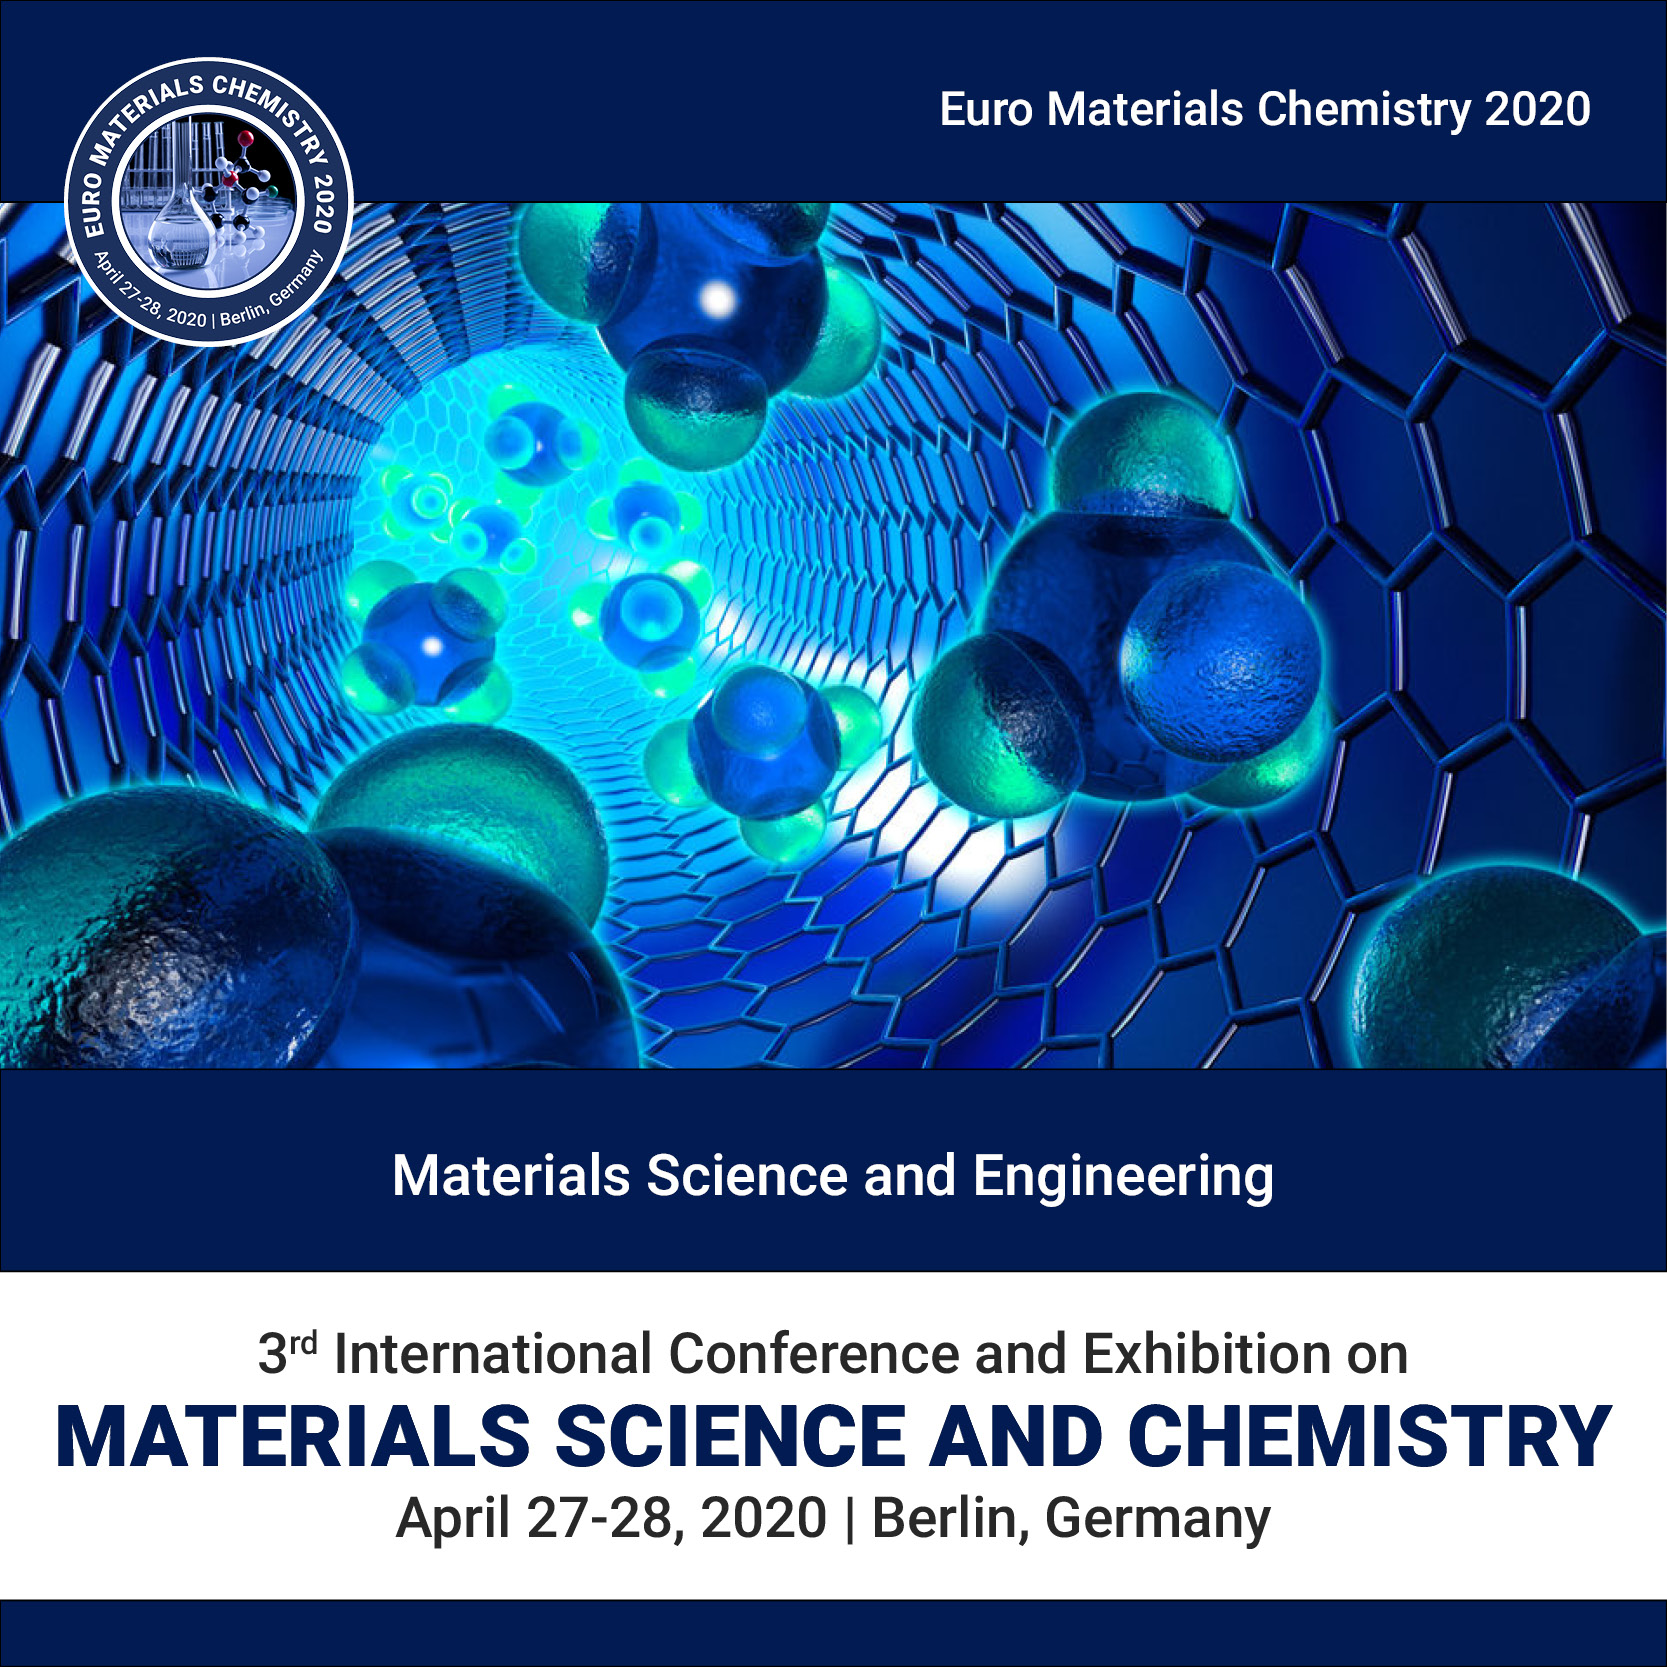 Materials Science and Engineering Photo